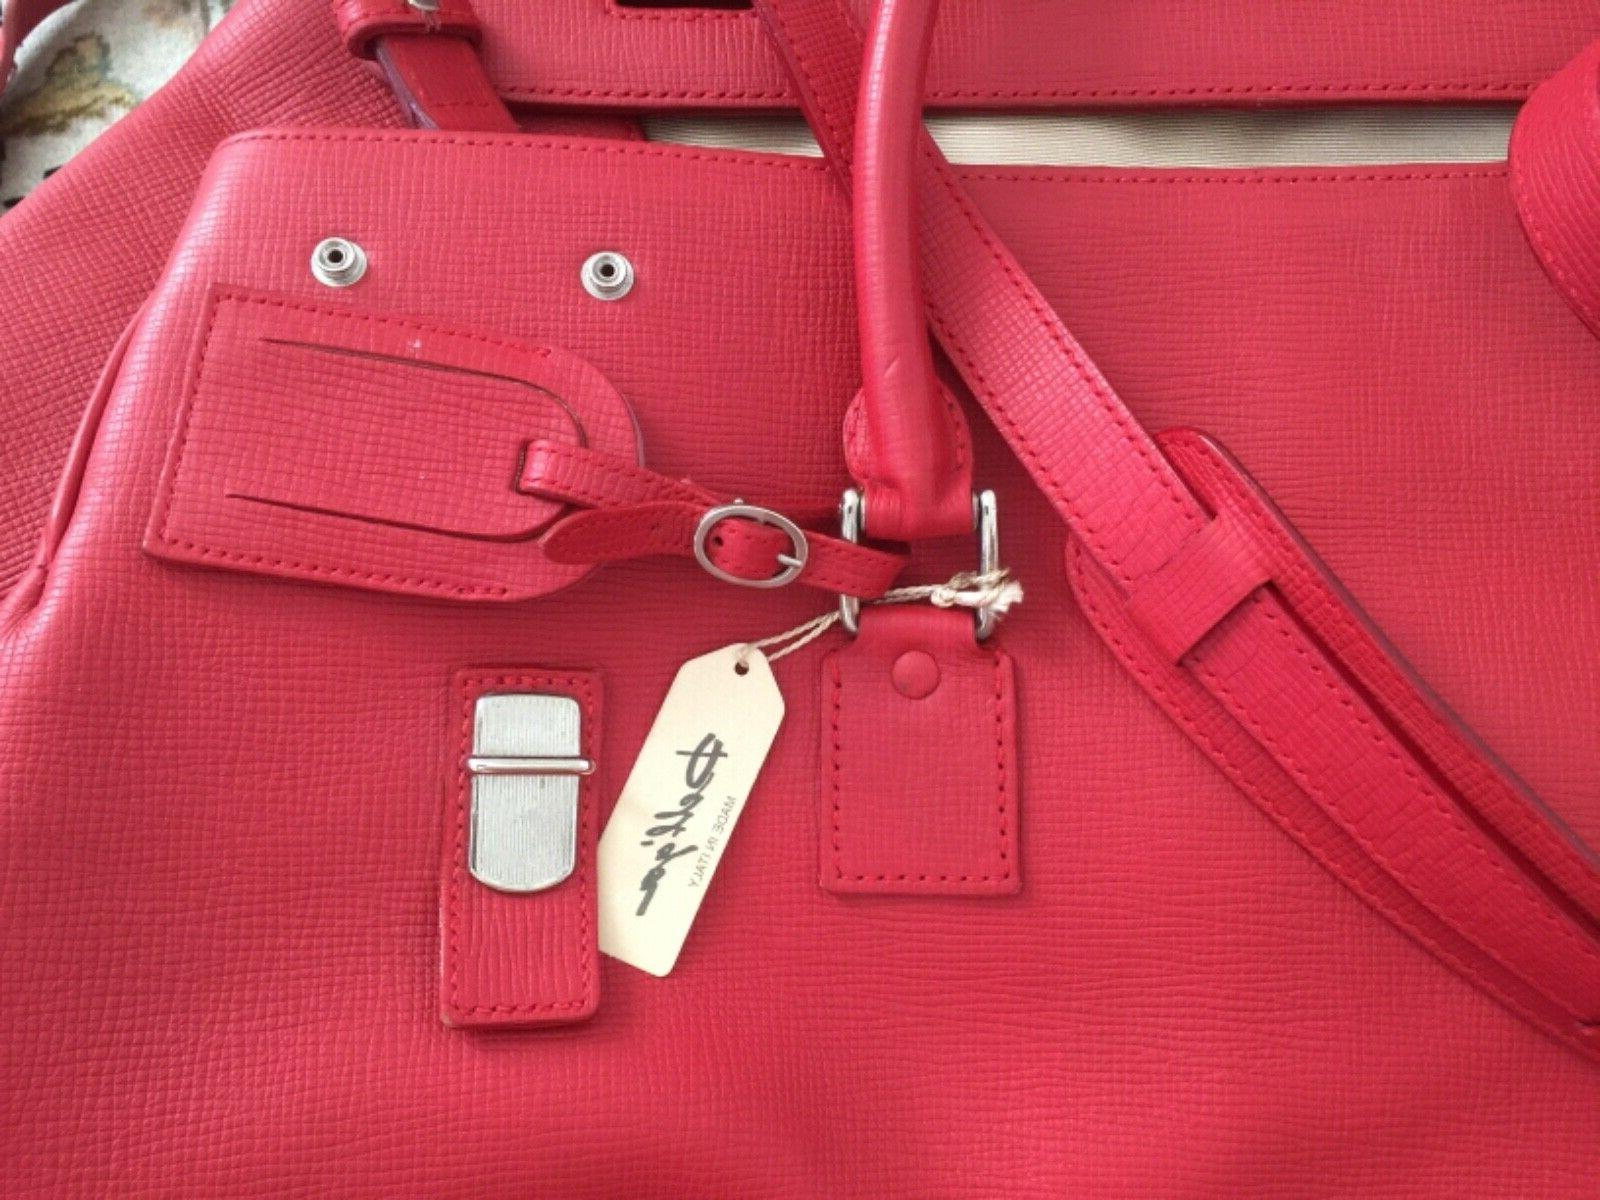 XXL Leather Duffel luggage red vintage